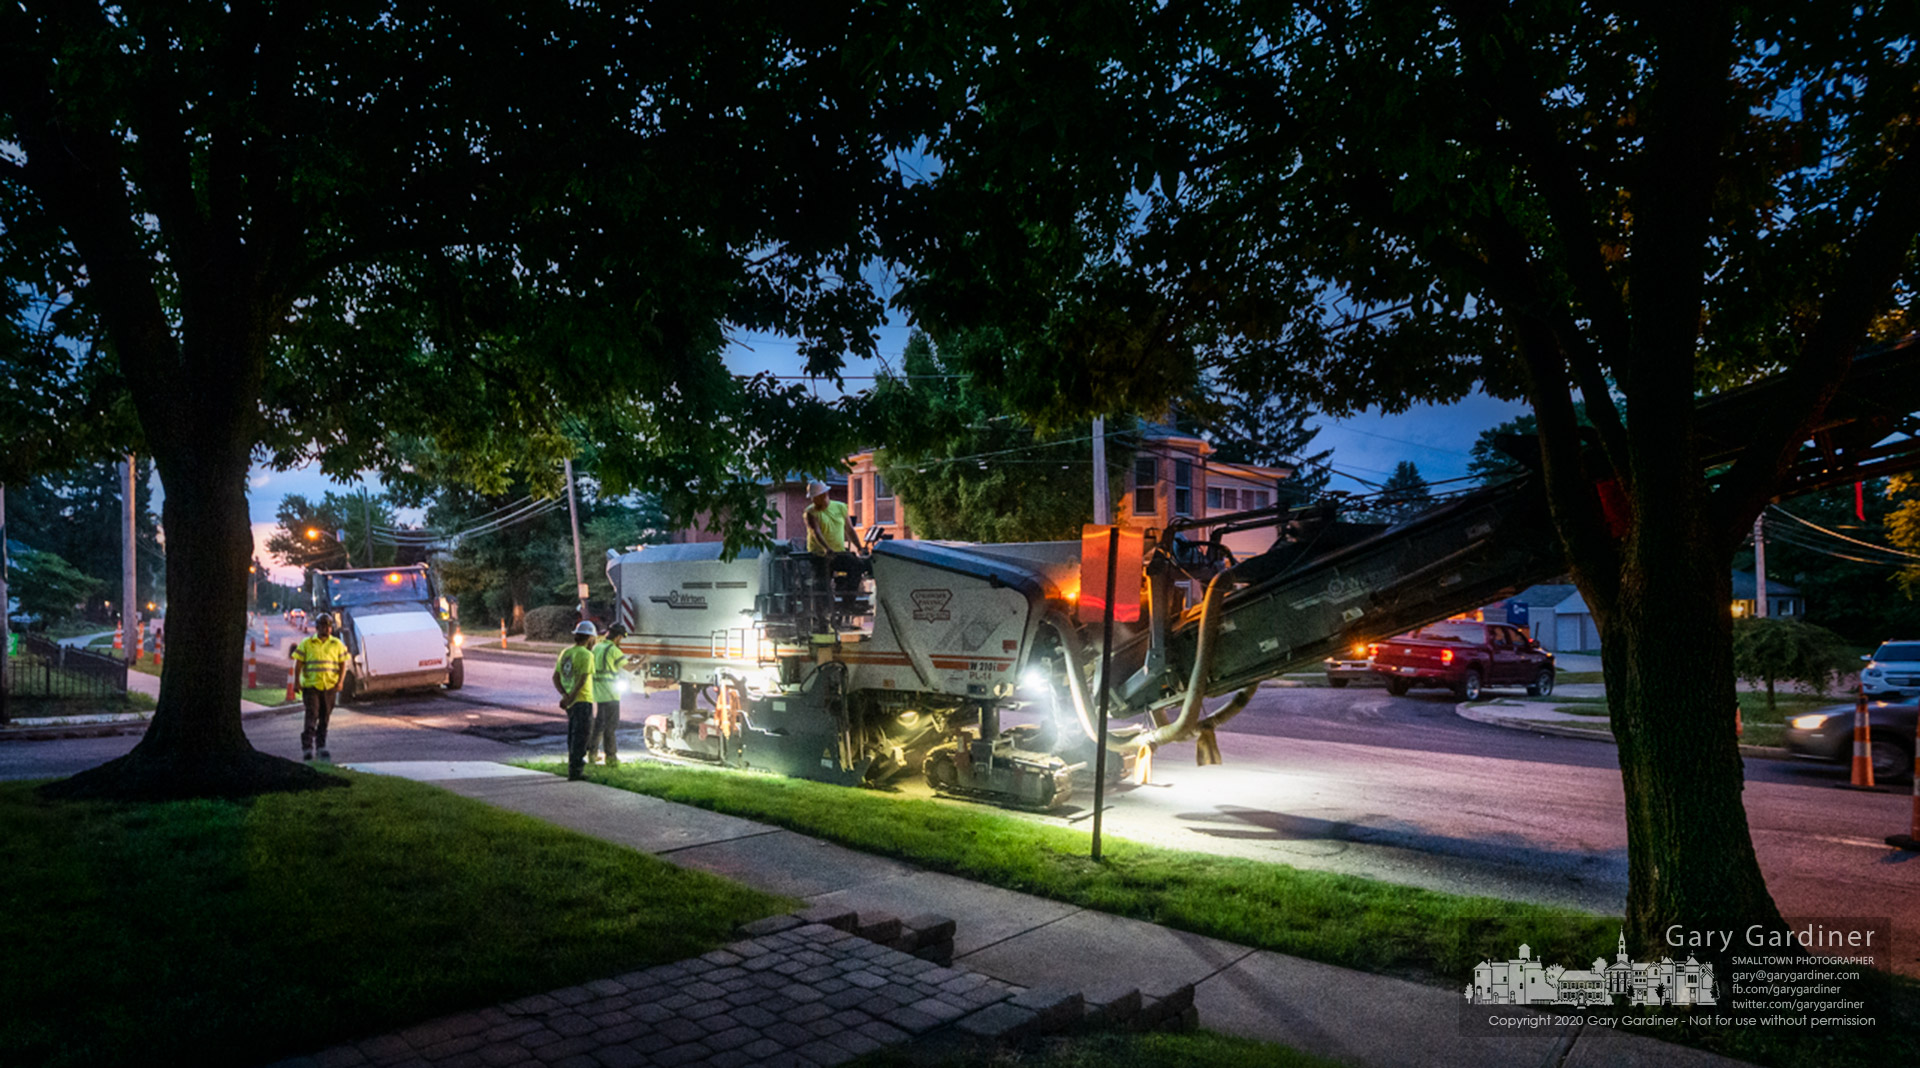 A milling machine removes three inches of asphalt from North State Street readying the surface for a new layer of asphalt during the overnight hours to prevent interruptions to daytime traffic. My Final Photo for June 30, 2020.